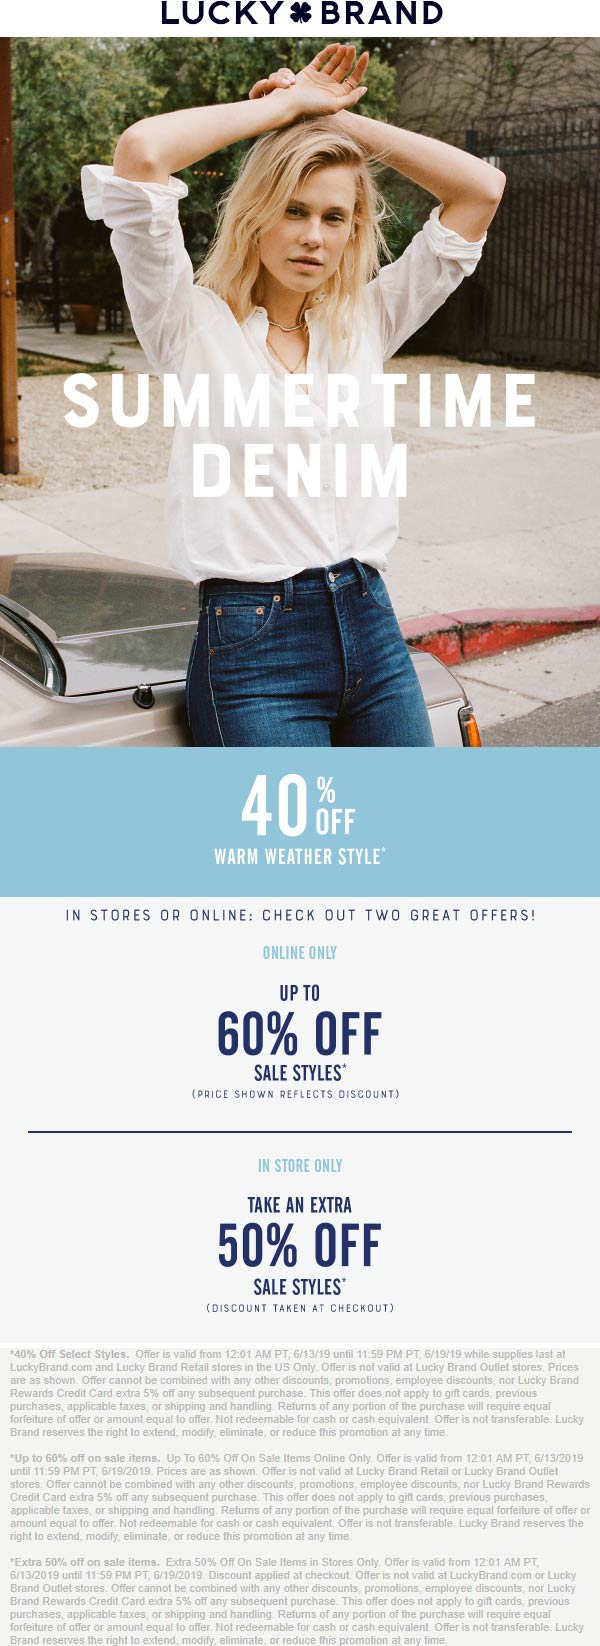 Lucky Brand Coupon November 2019 Extra 50% off sale items & more at Lucky Brand